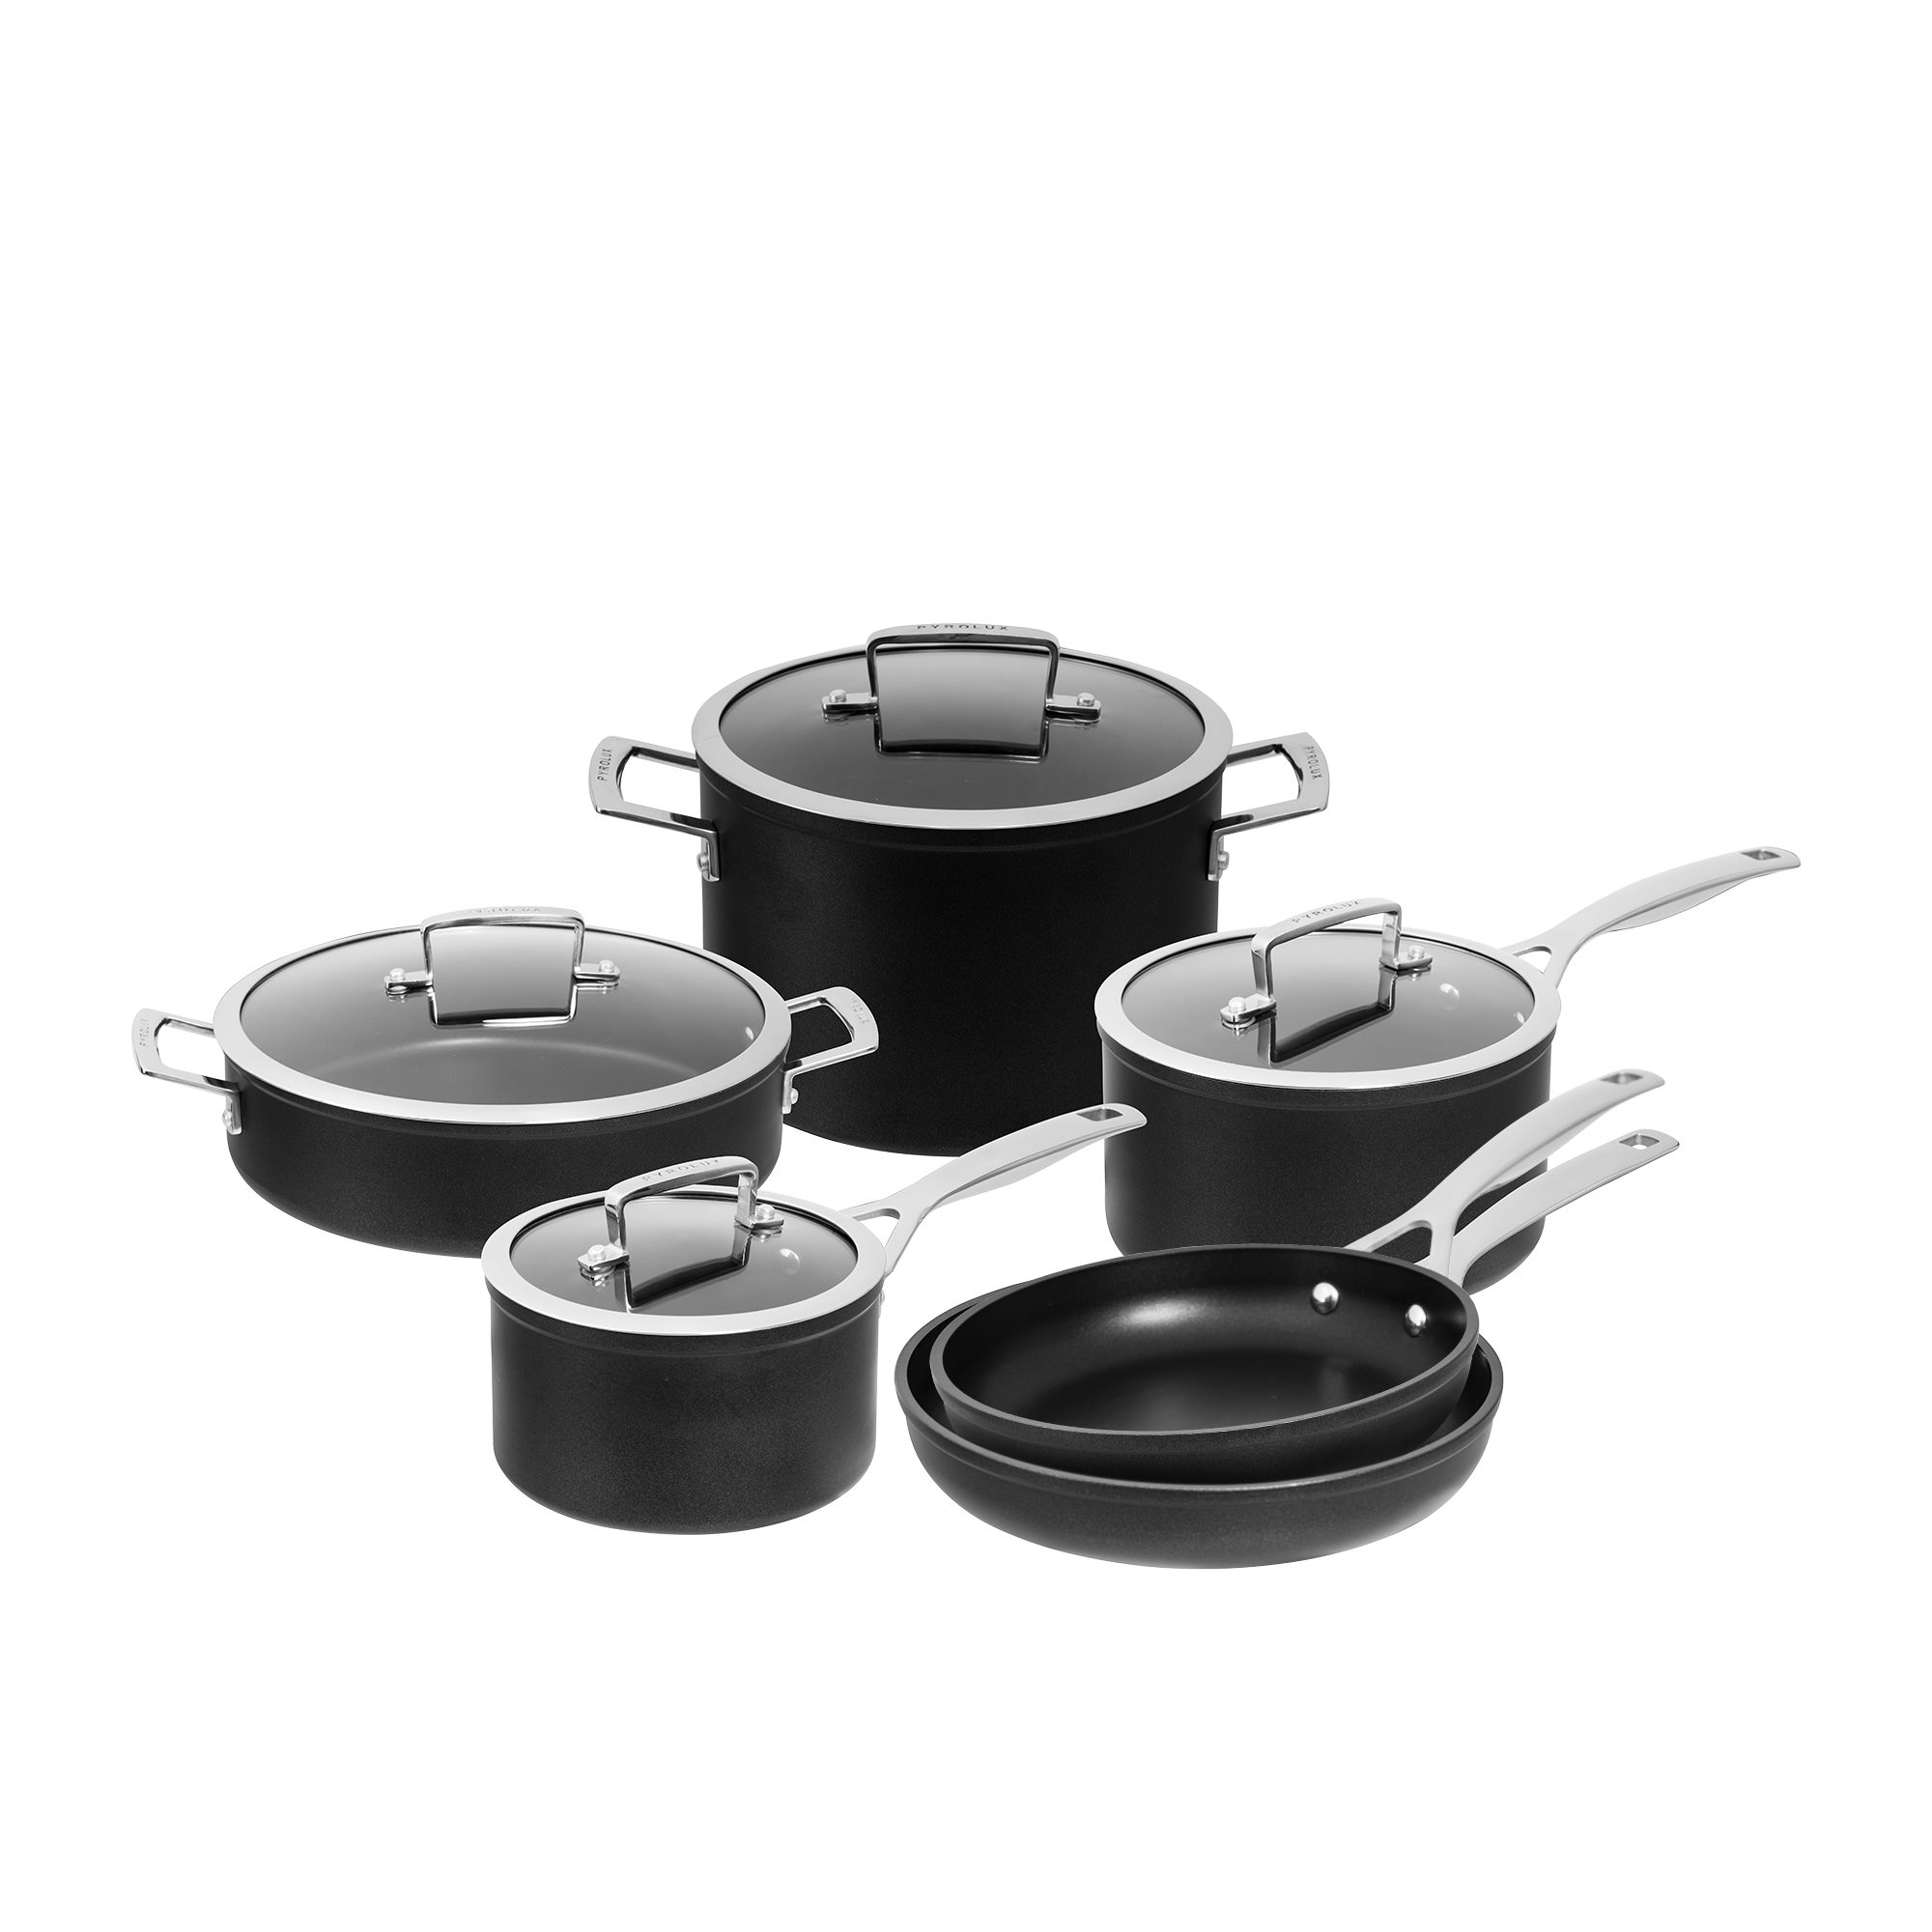 Pyrolux Ignite 6pc Cookware Set